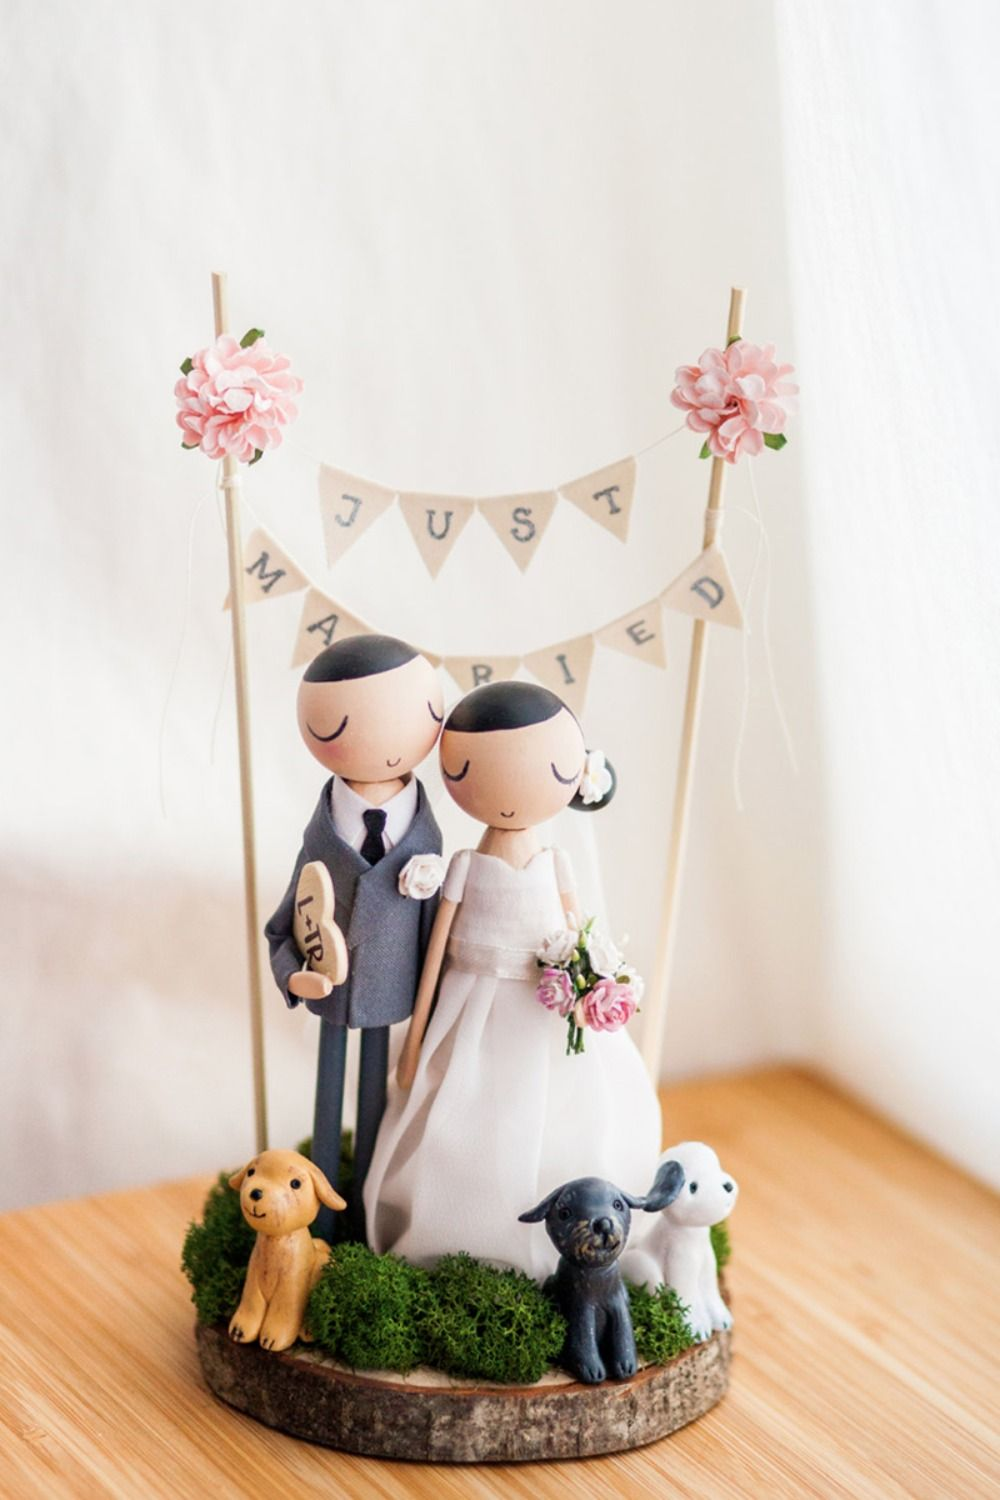 20 Wedding Cake Toppers We Love | Couples, Cake and Wedding cake